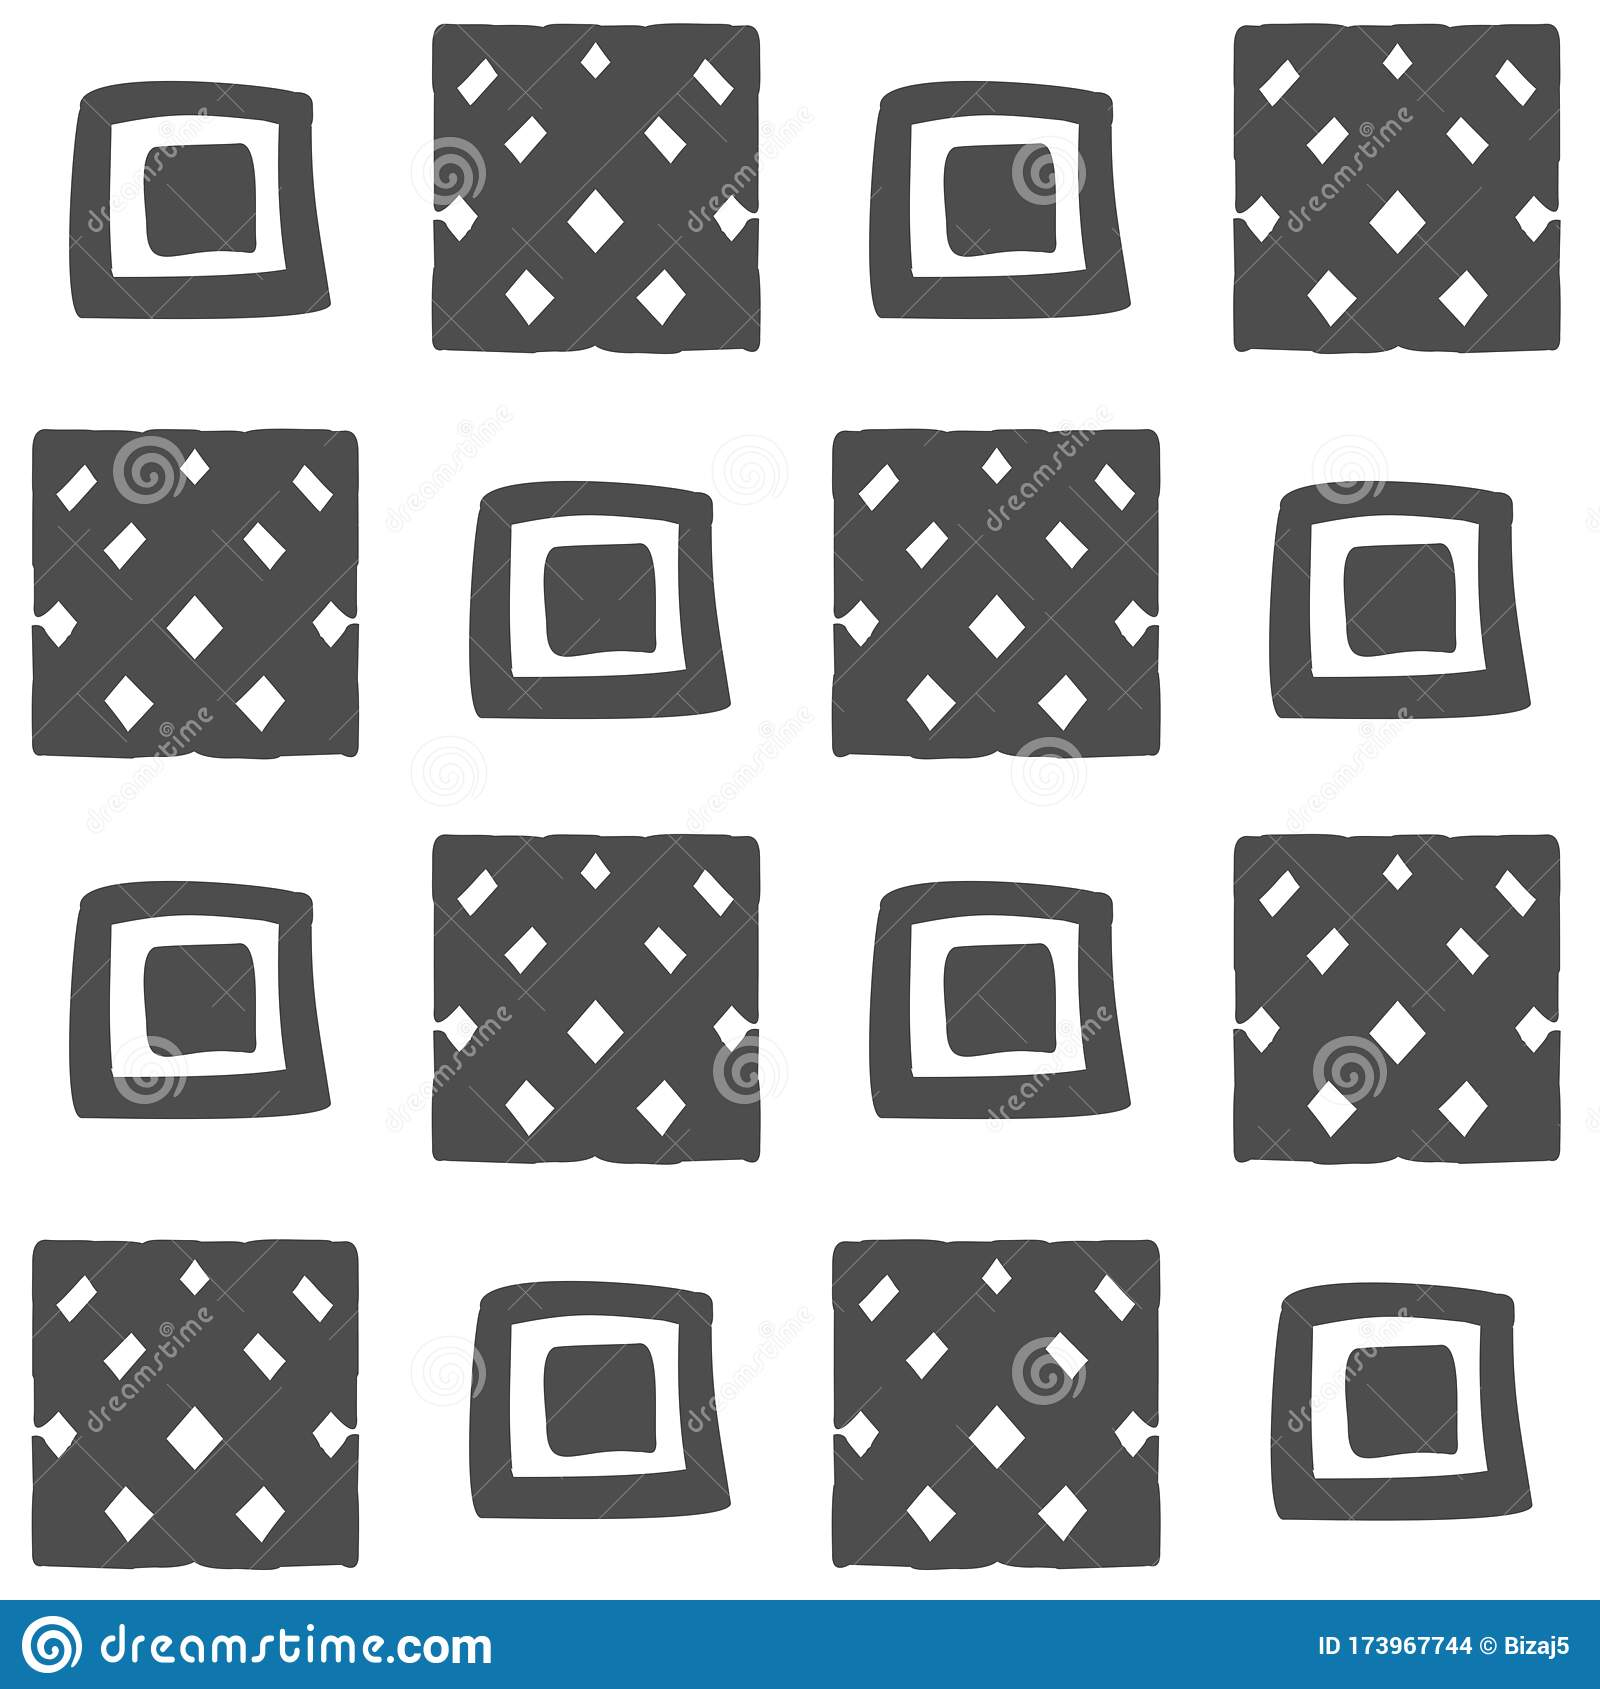 Vector Seamless Black And White Geometric Pattern From Hand Drawn Different Squares For Decor Textile Fabric Carpet Wallpaper Stock Illustration Illustration Of Decorative Illustration 173967744